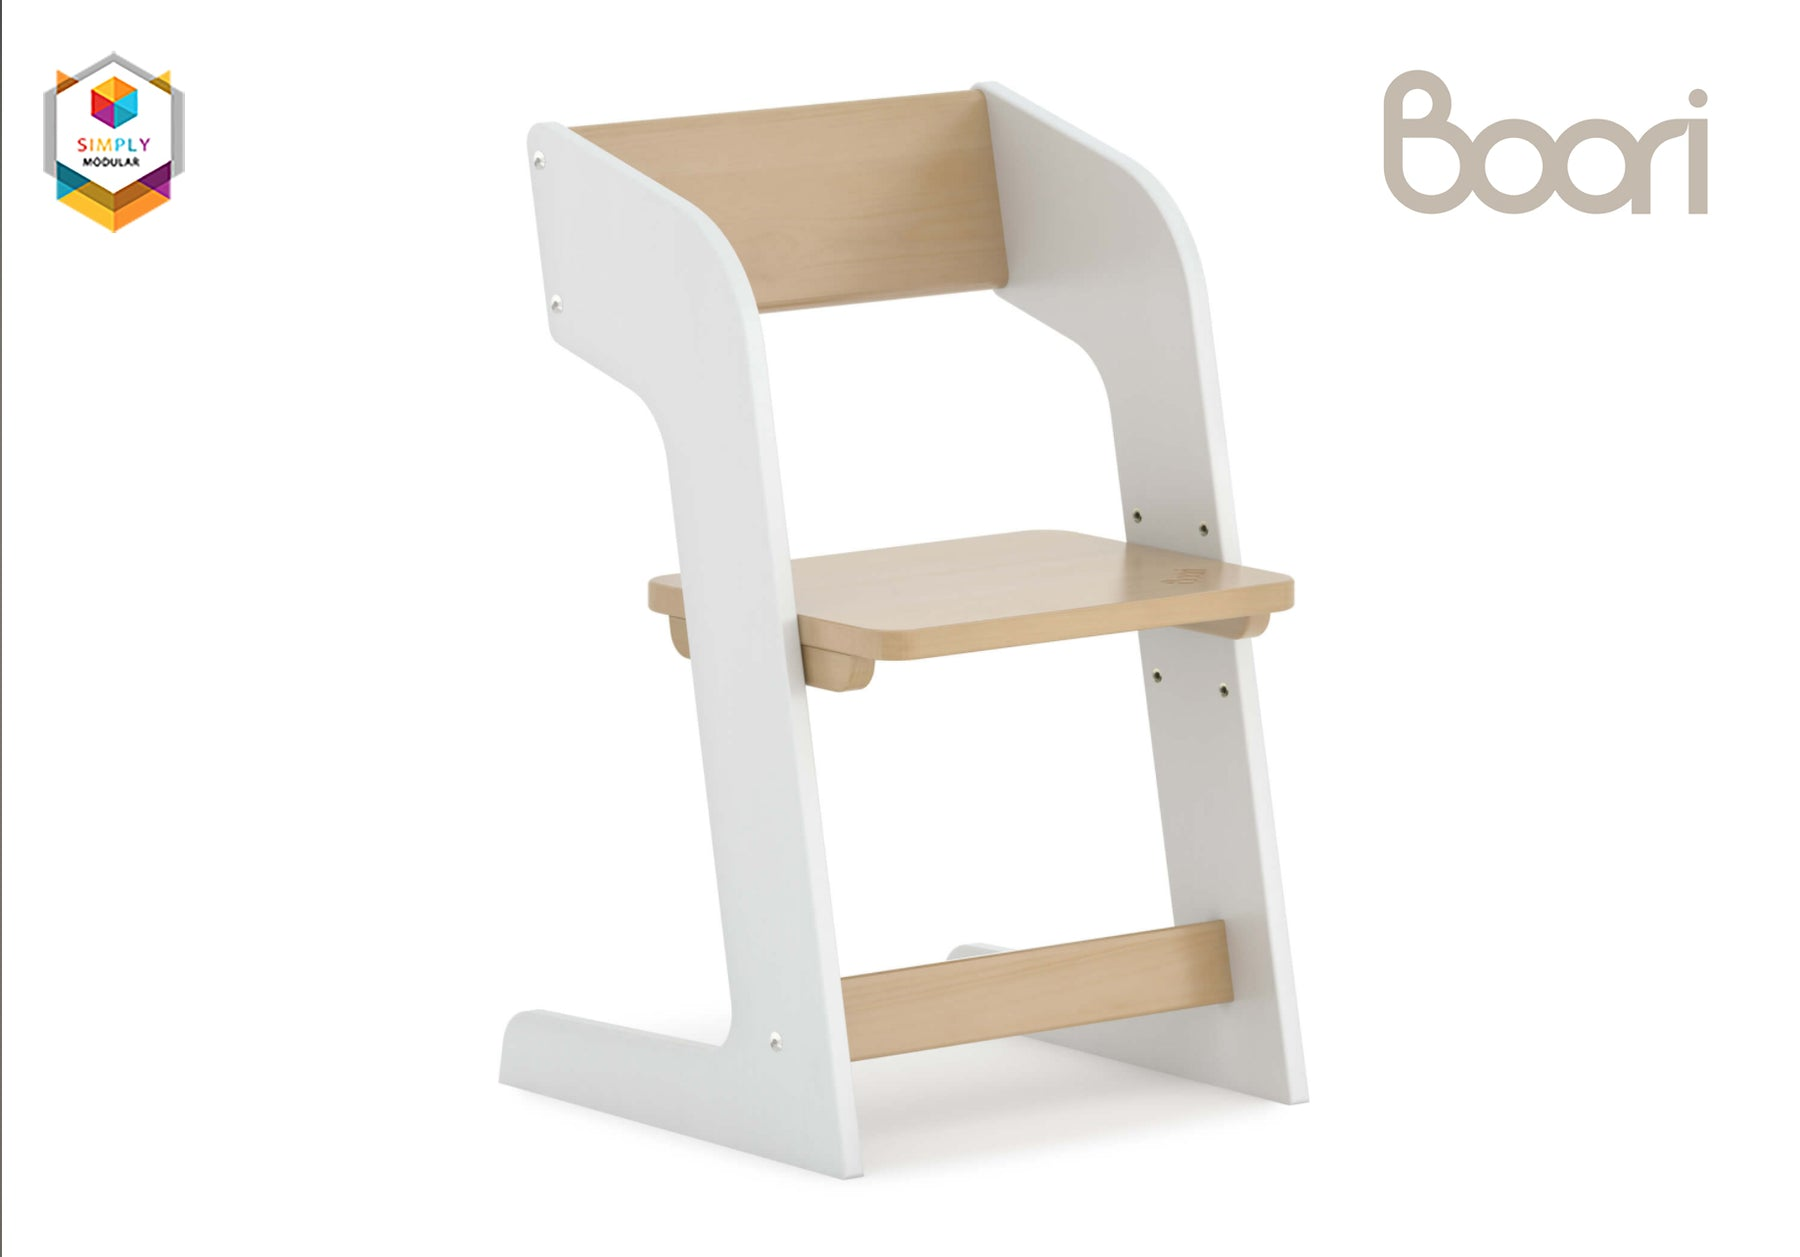 Boori Adjustable Oslo Study Chair